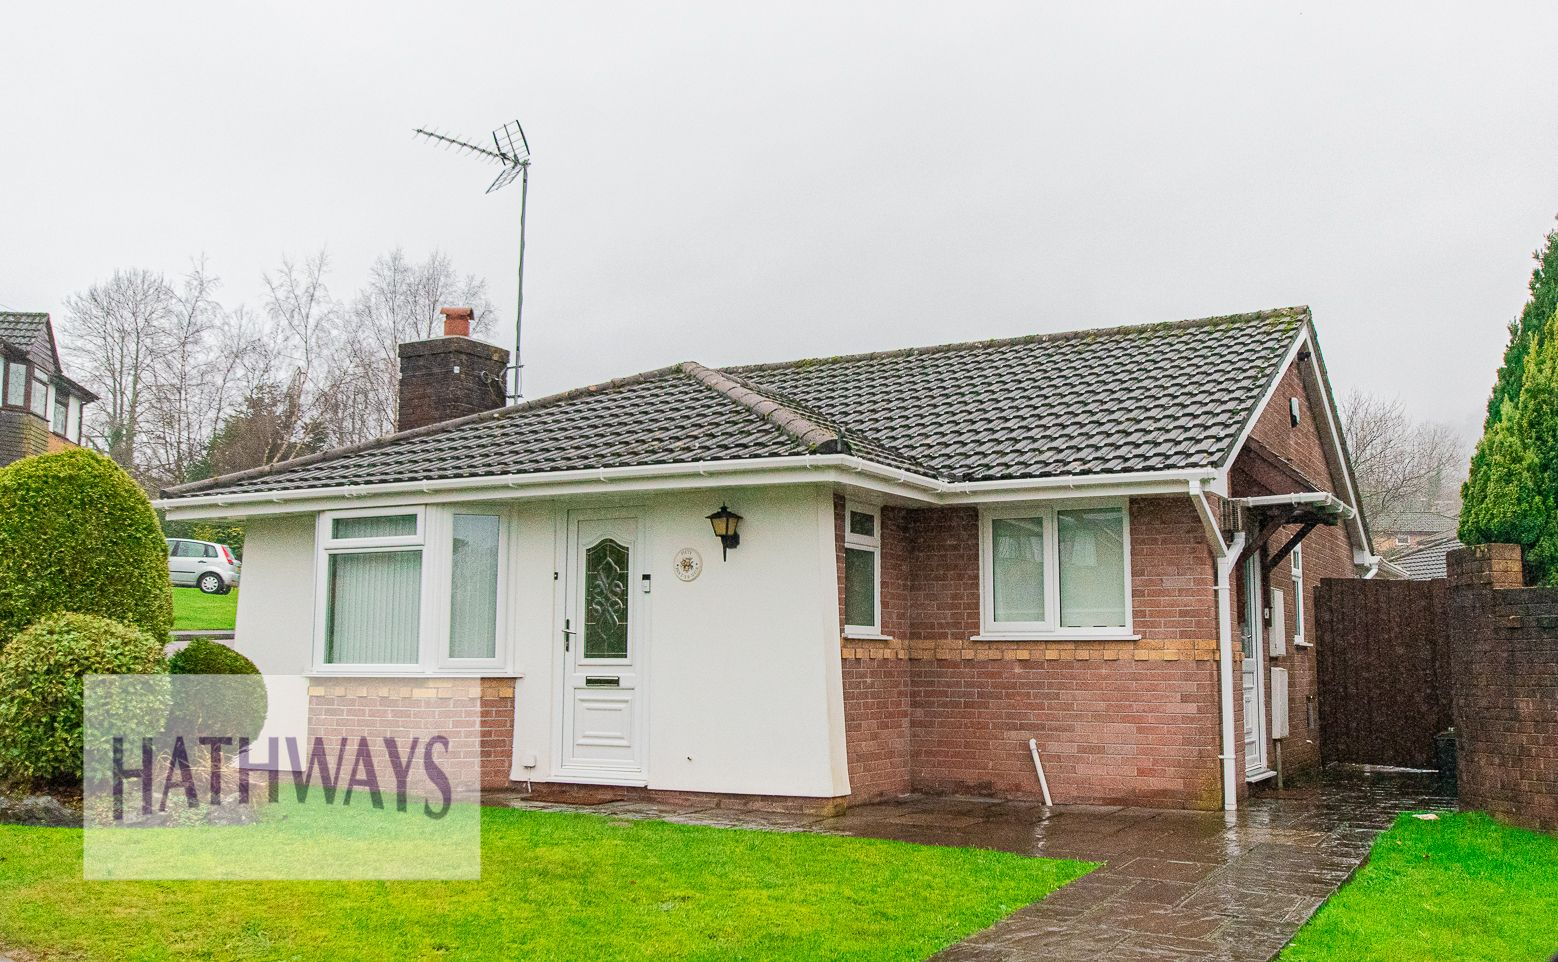 2 bed bungalow to rent in Pant Yr Heol Close, NP44